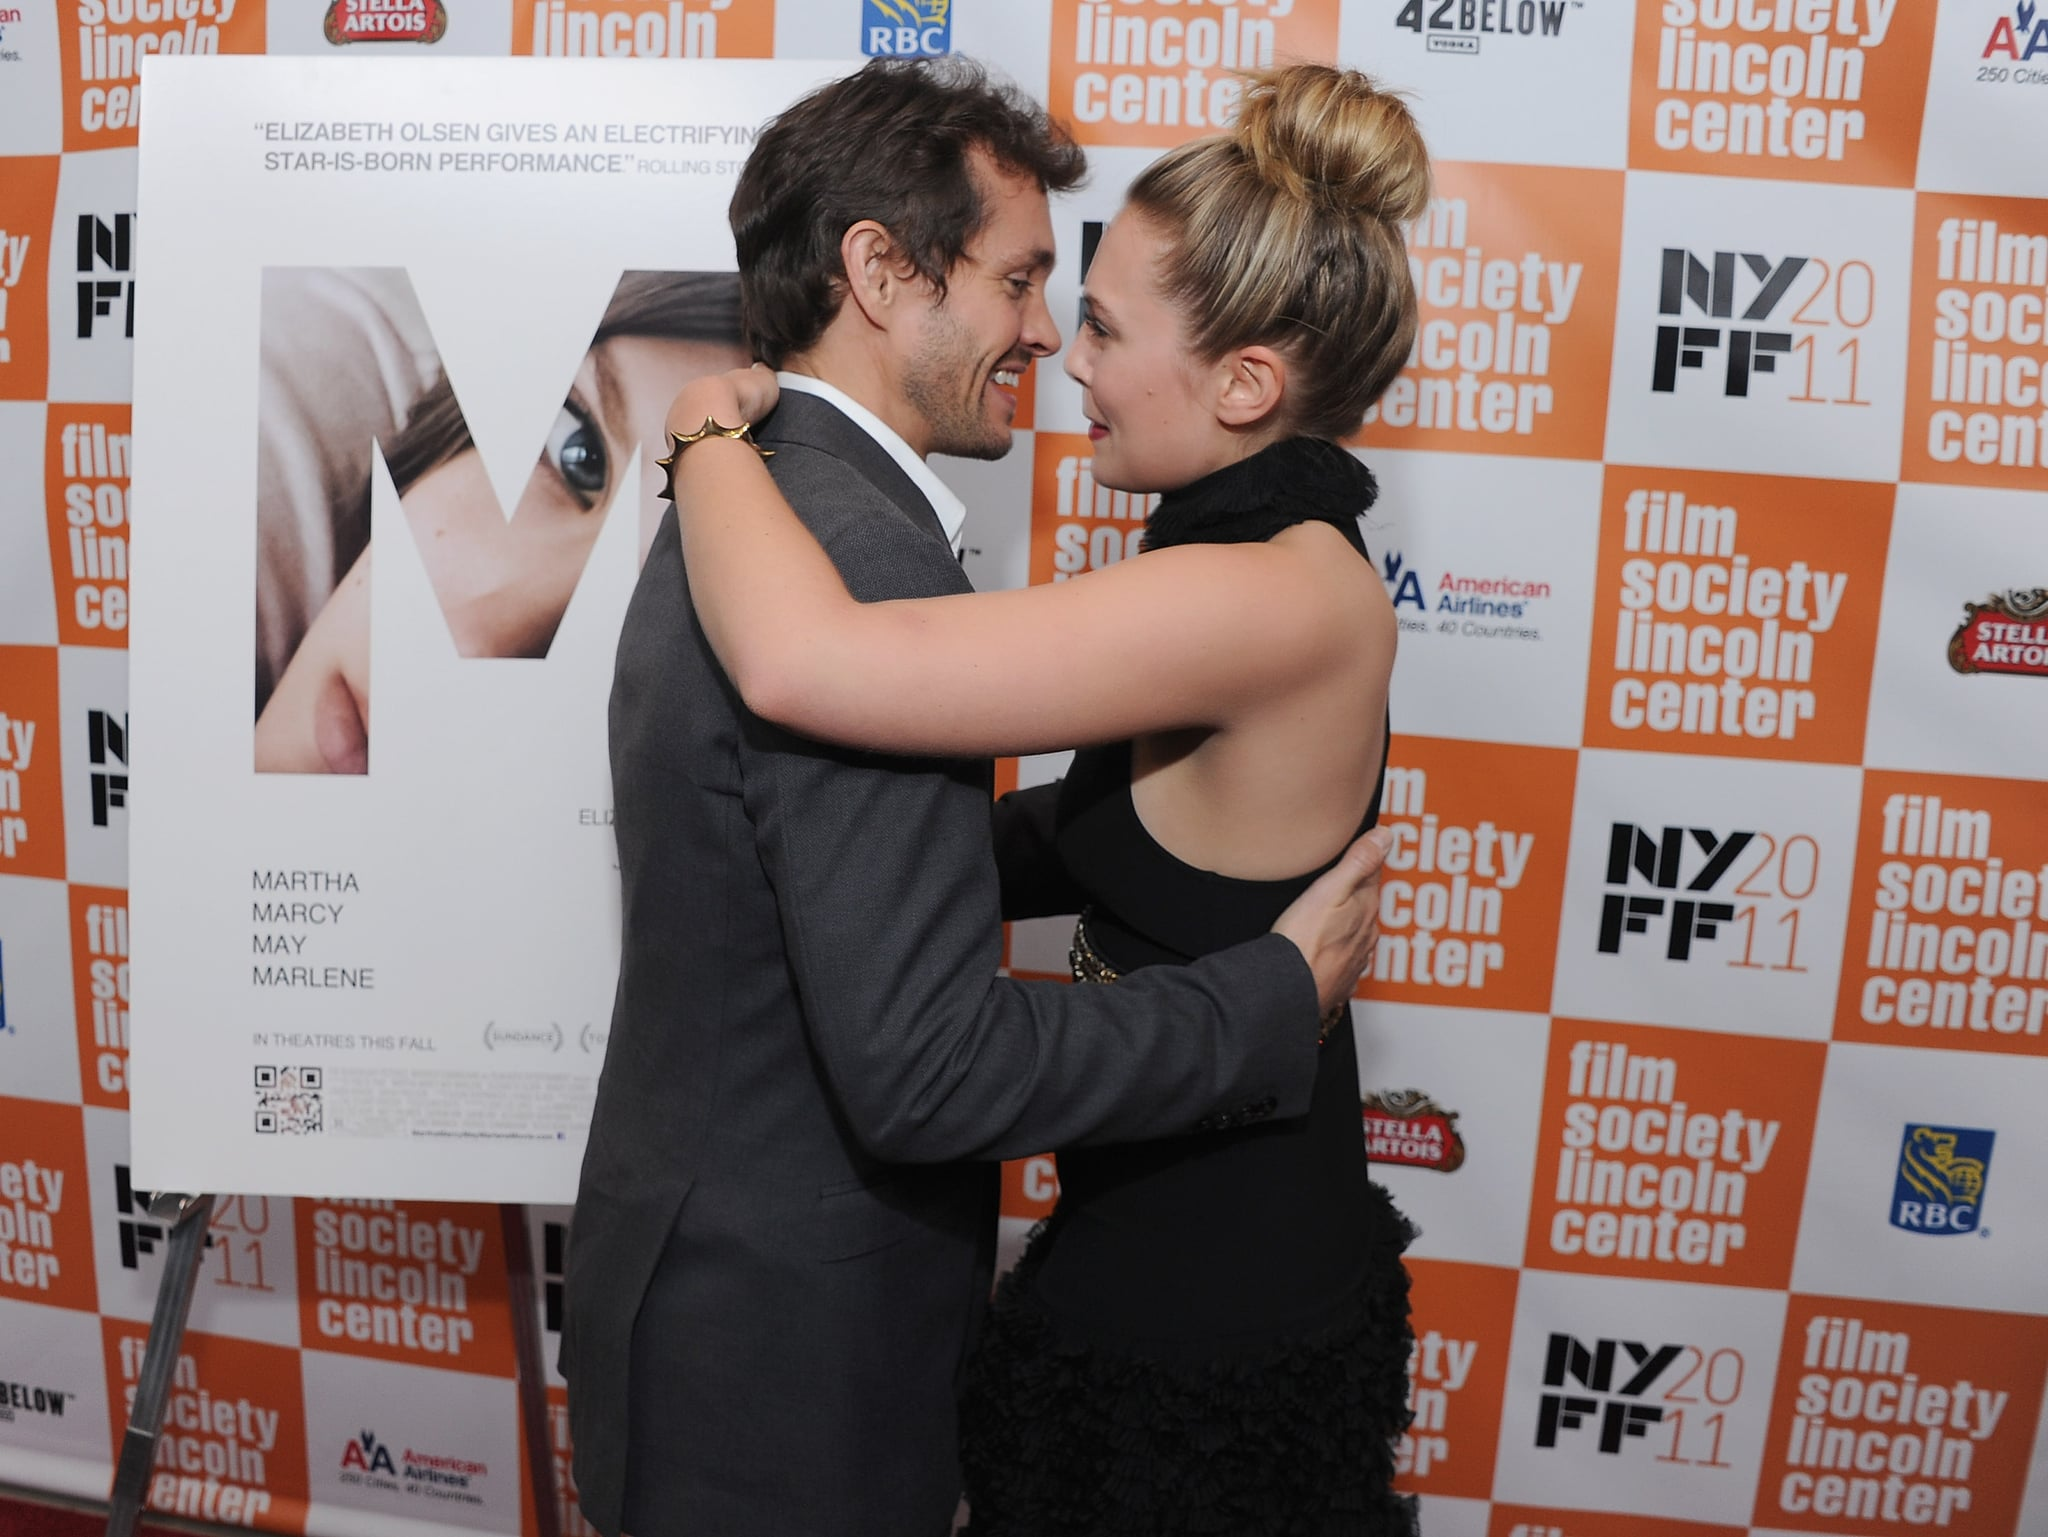 Hugh and Lizzie hugged when they met on the carpet.